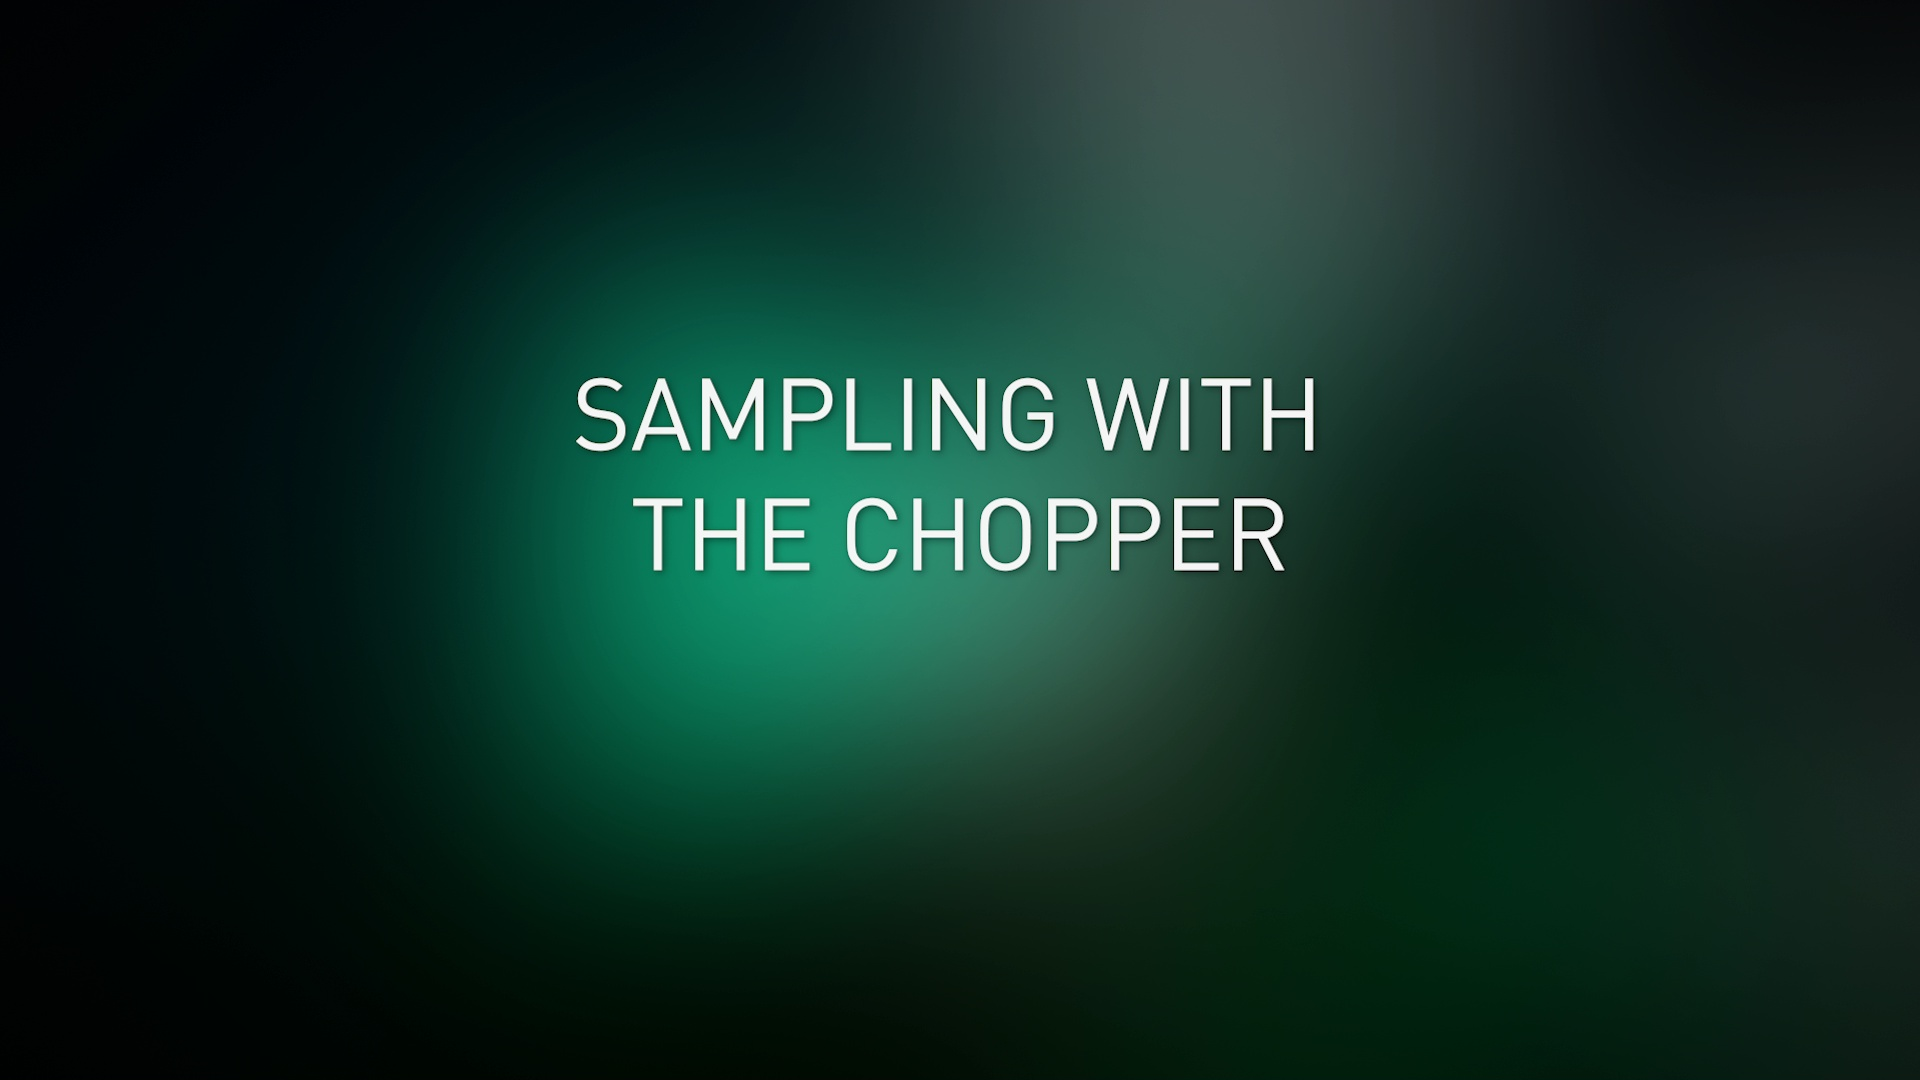 Sampling with the Chopper